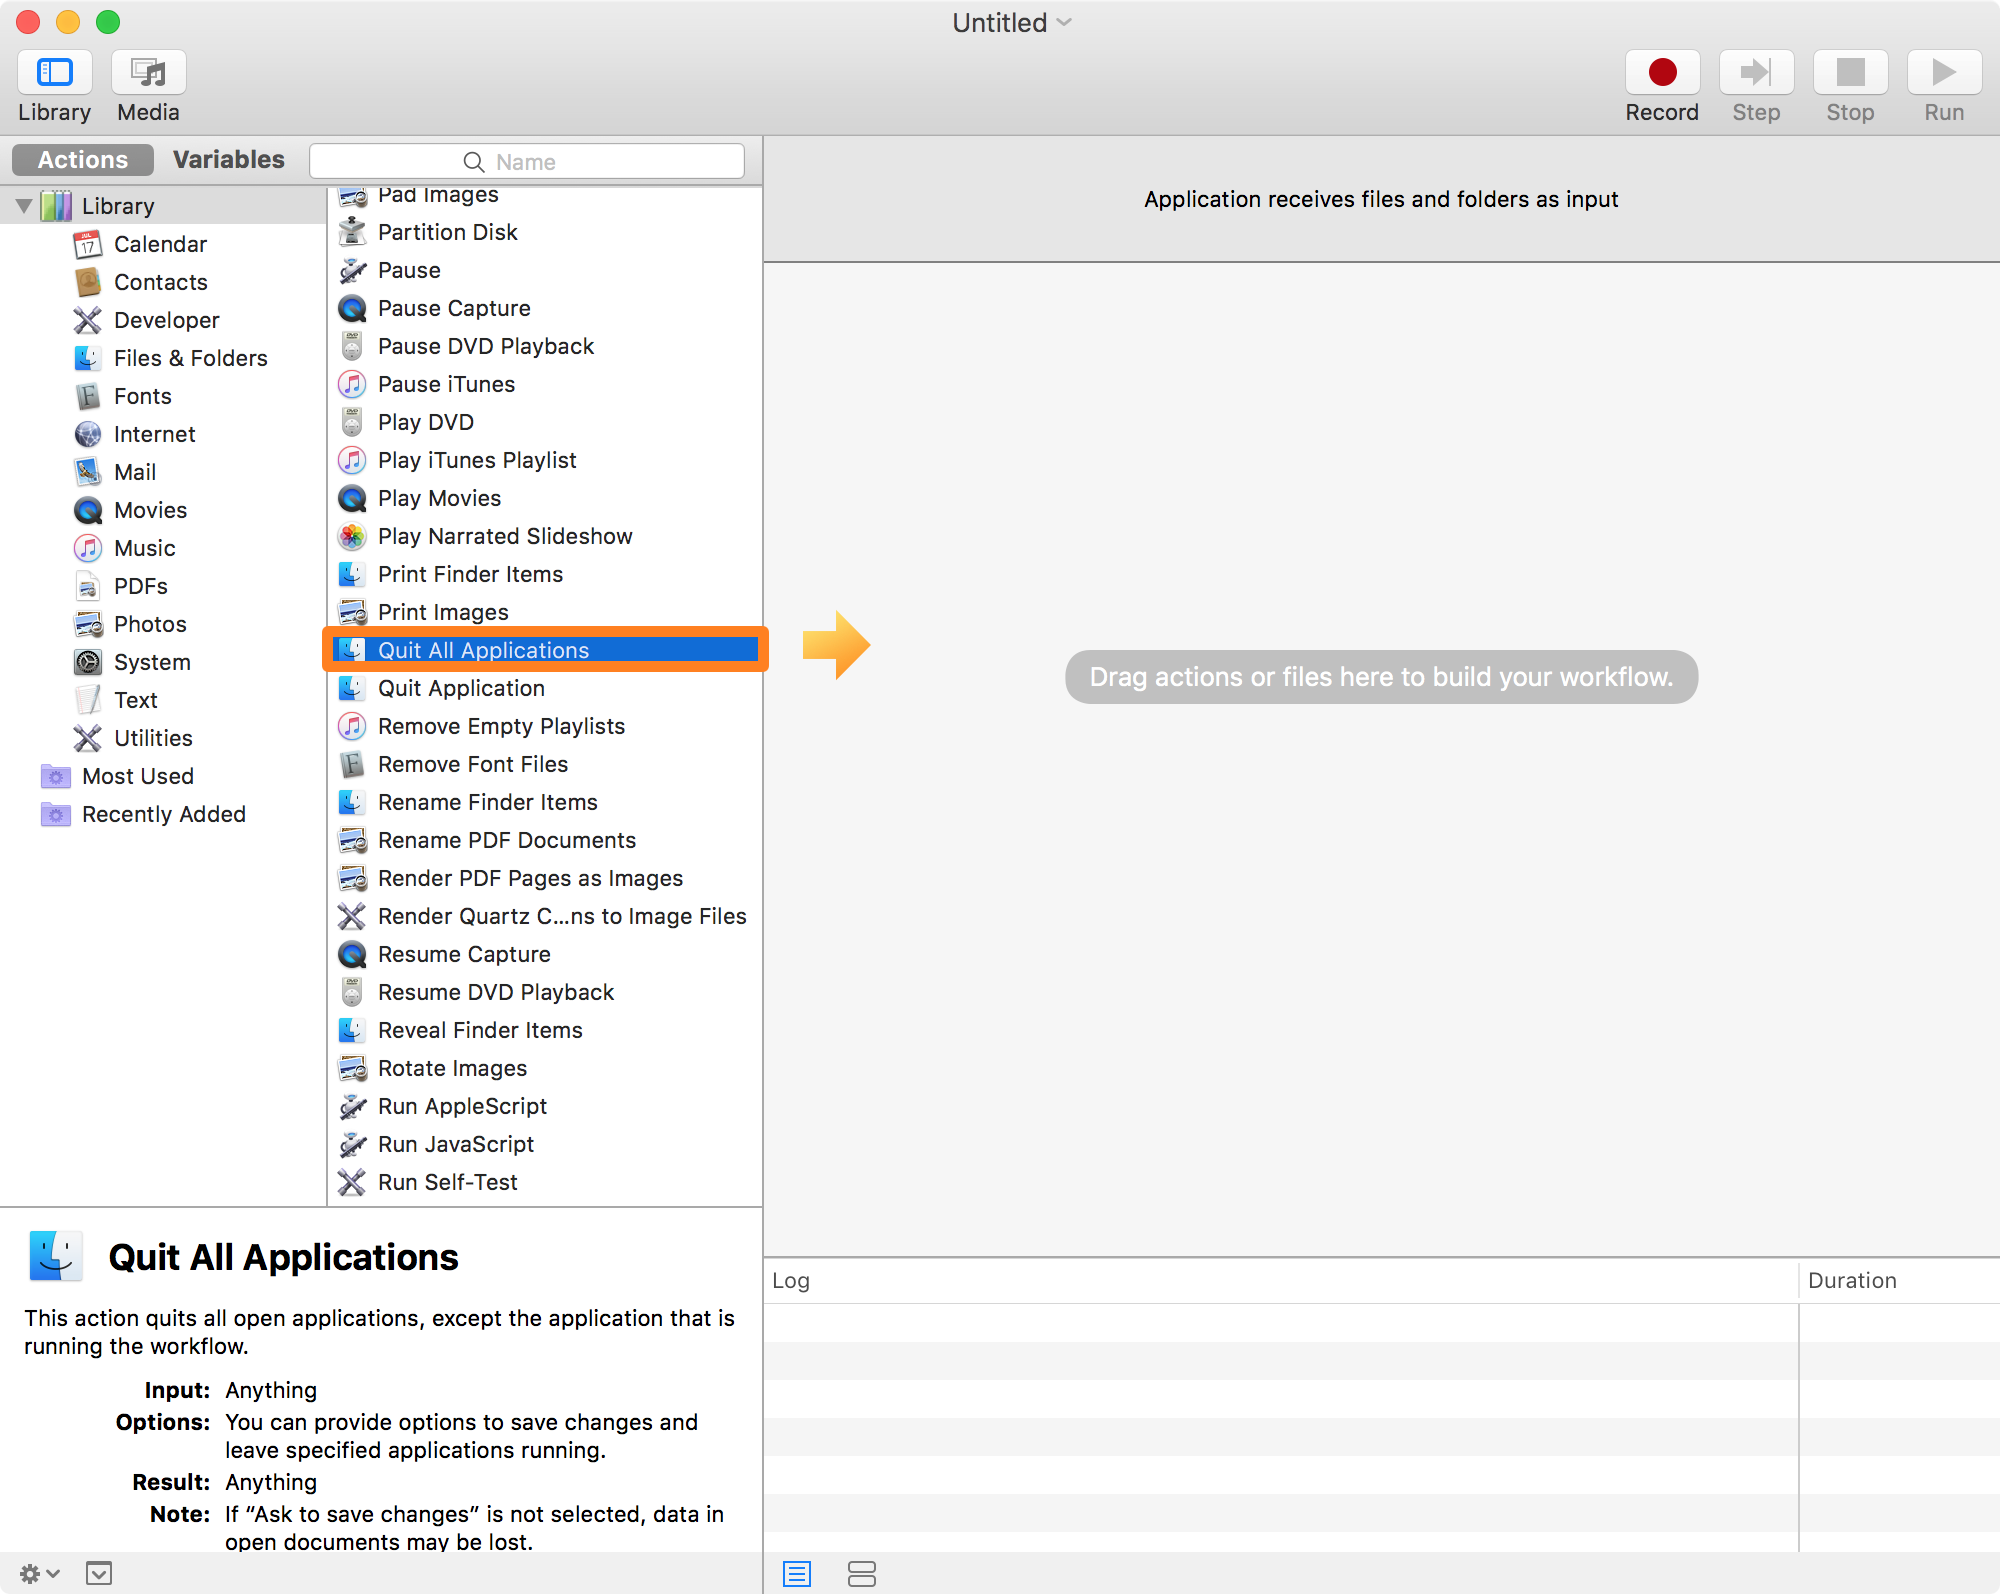 Automator Quit All Applications Workflow